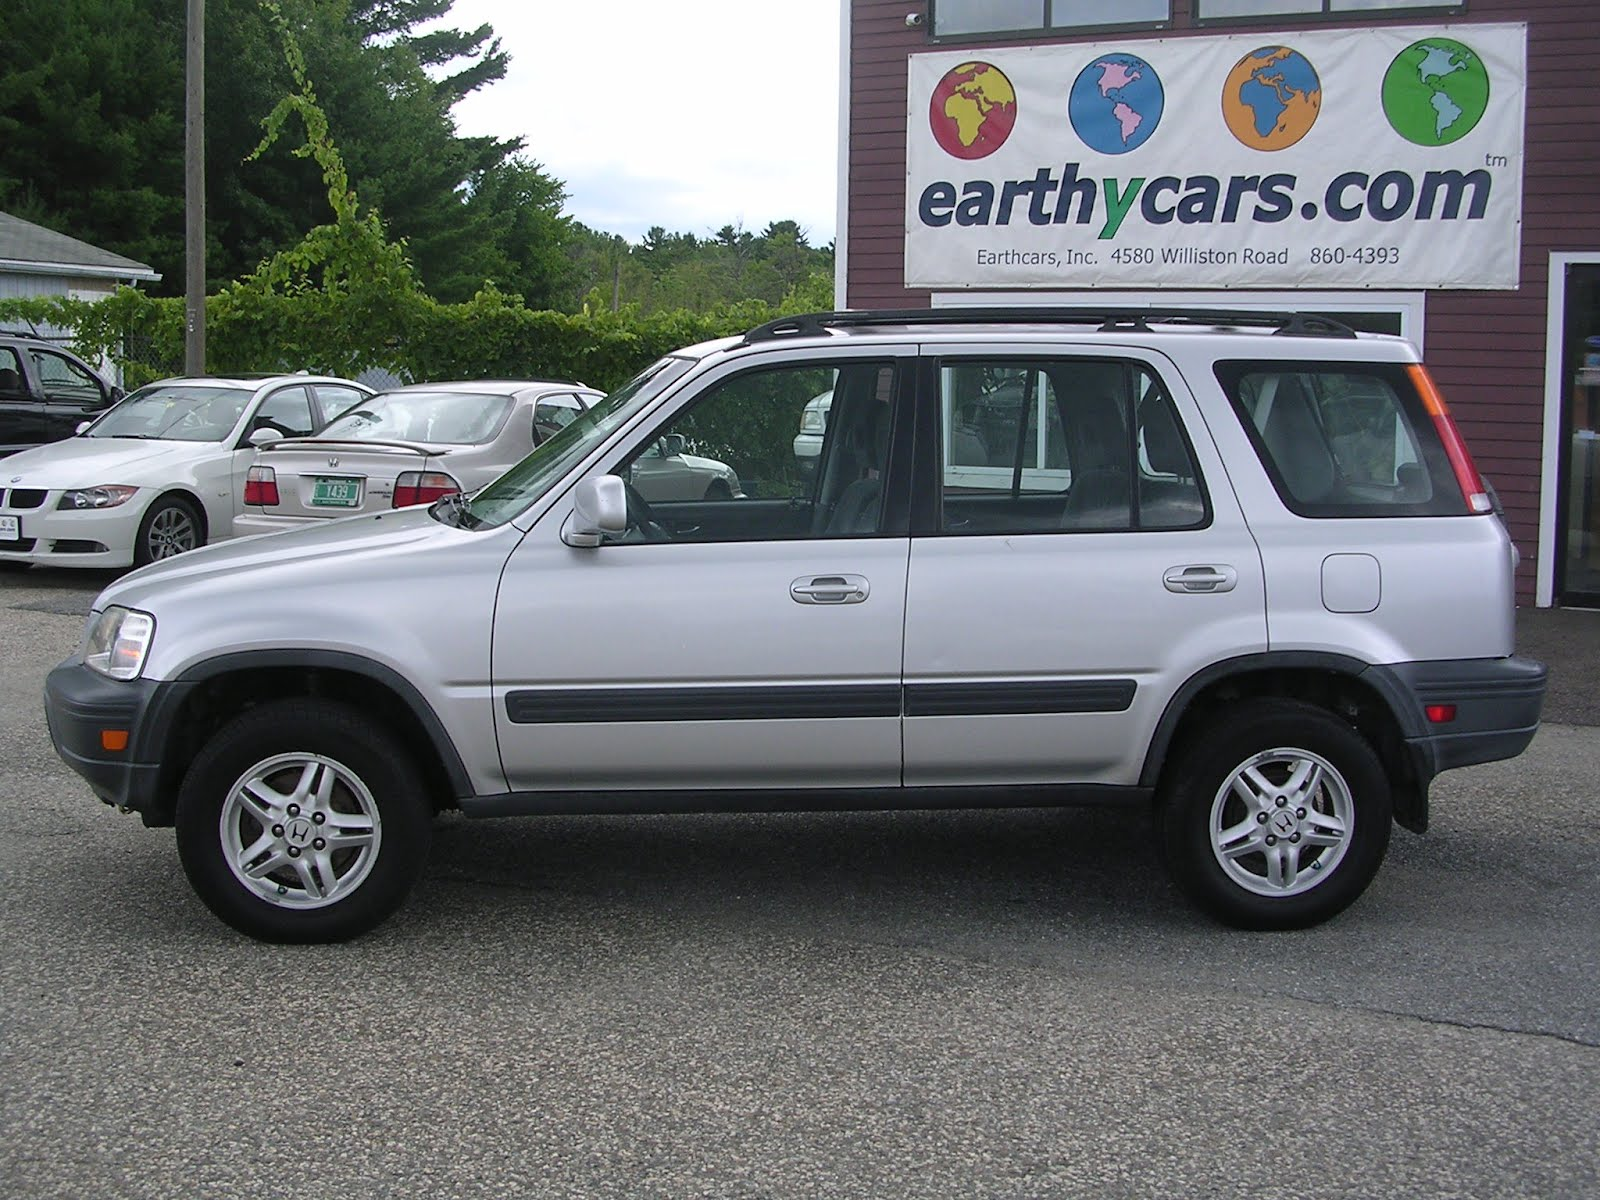 earthy cars blog earthy car of the week silver 2000 honda cr v ex suv. Black Bedroom Furniture Sets. Home Design Ideas